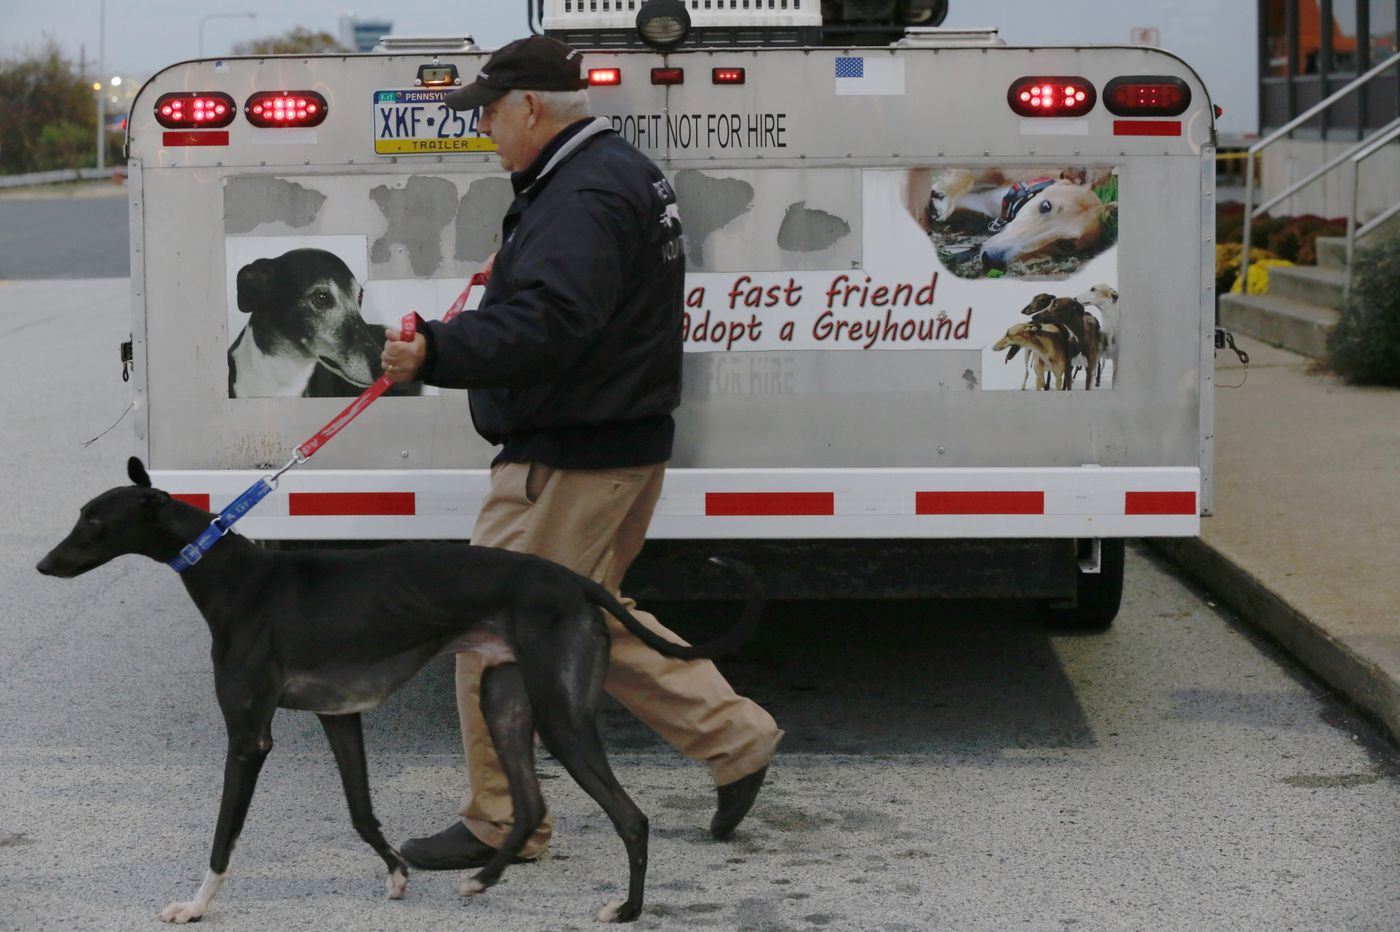 Greyhounds arrive in Philly from the 'worst racetrack in the world'